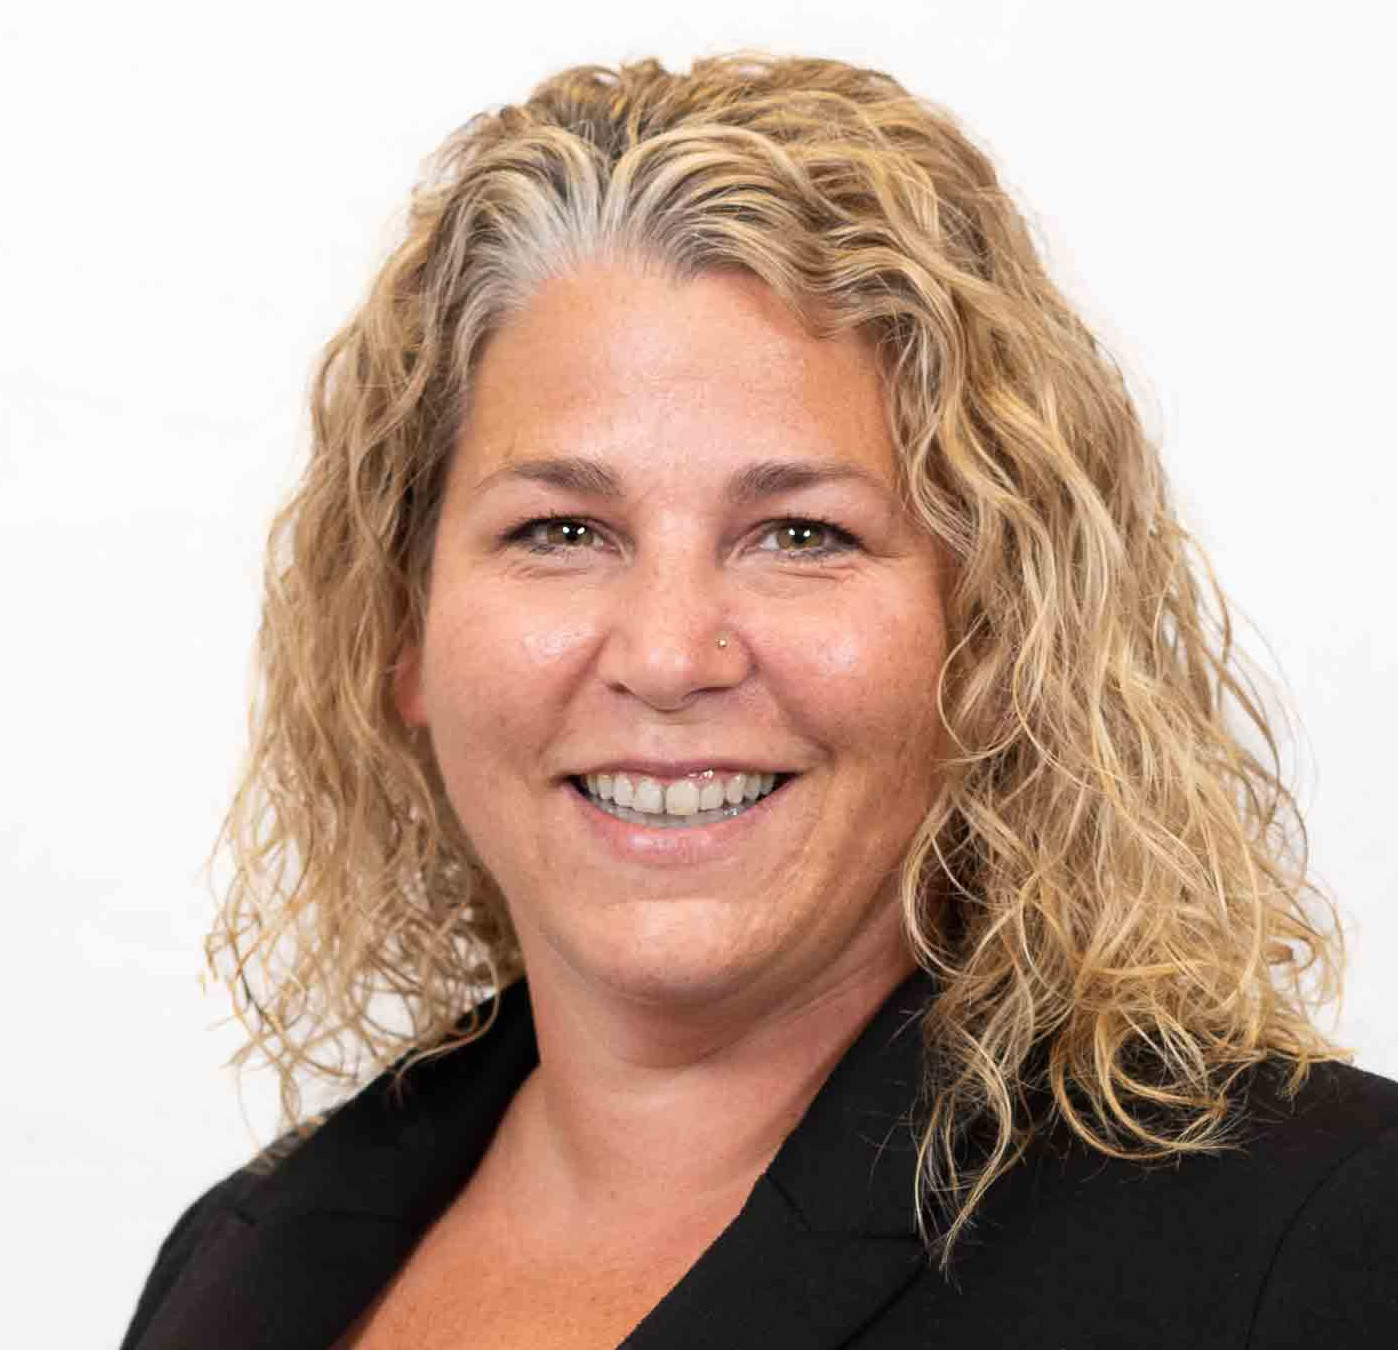 Melissa DeBeau - Service Manager